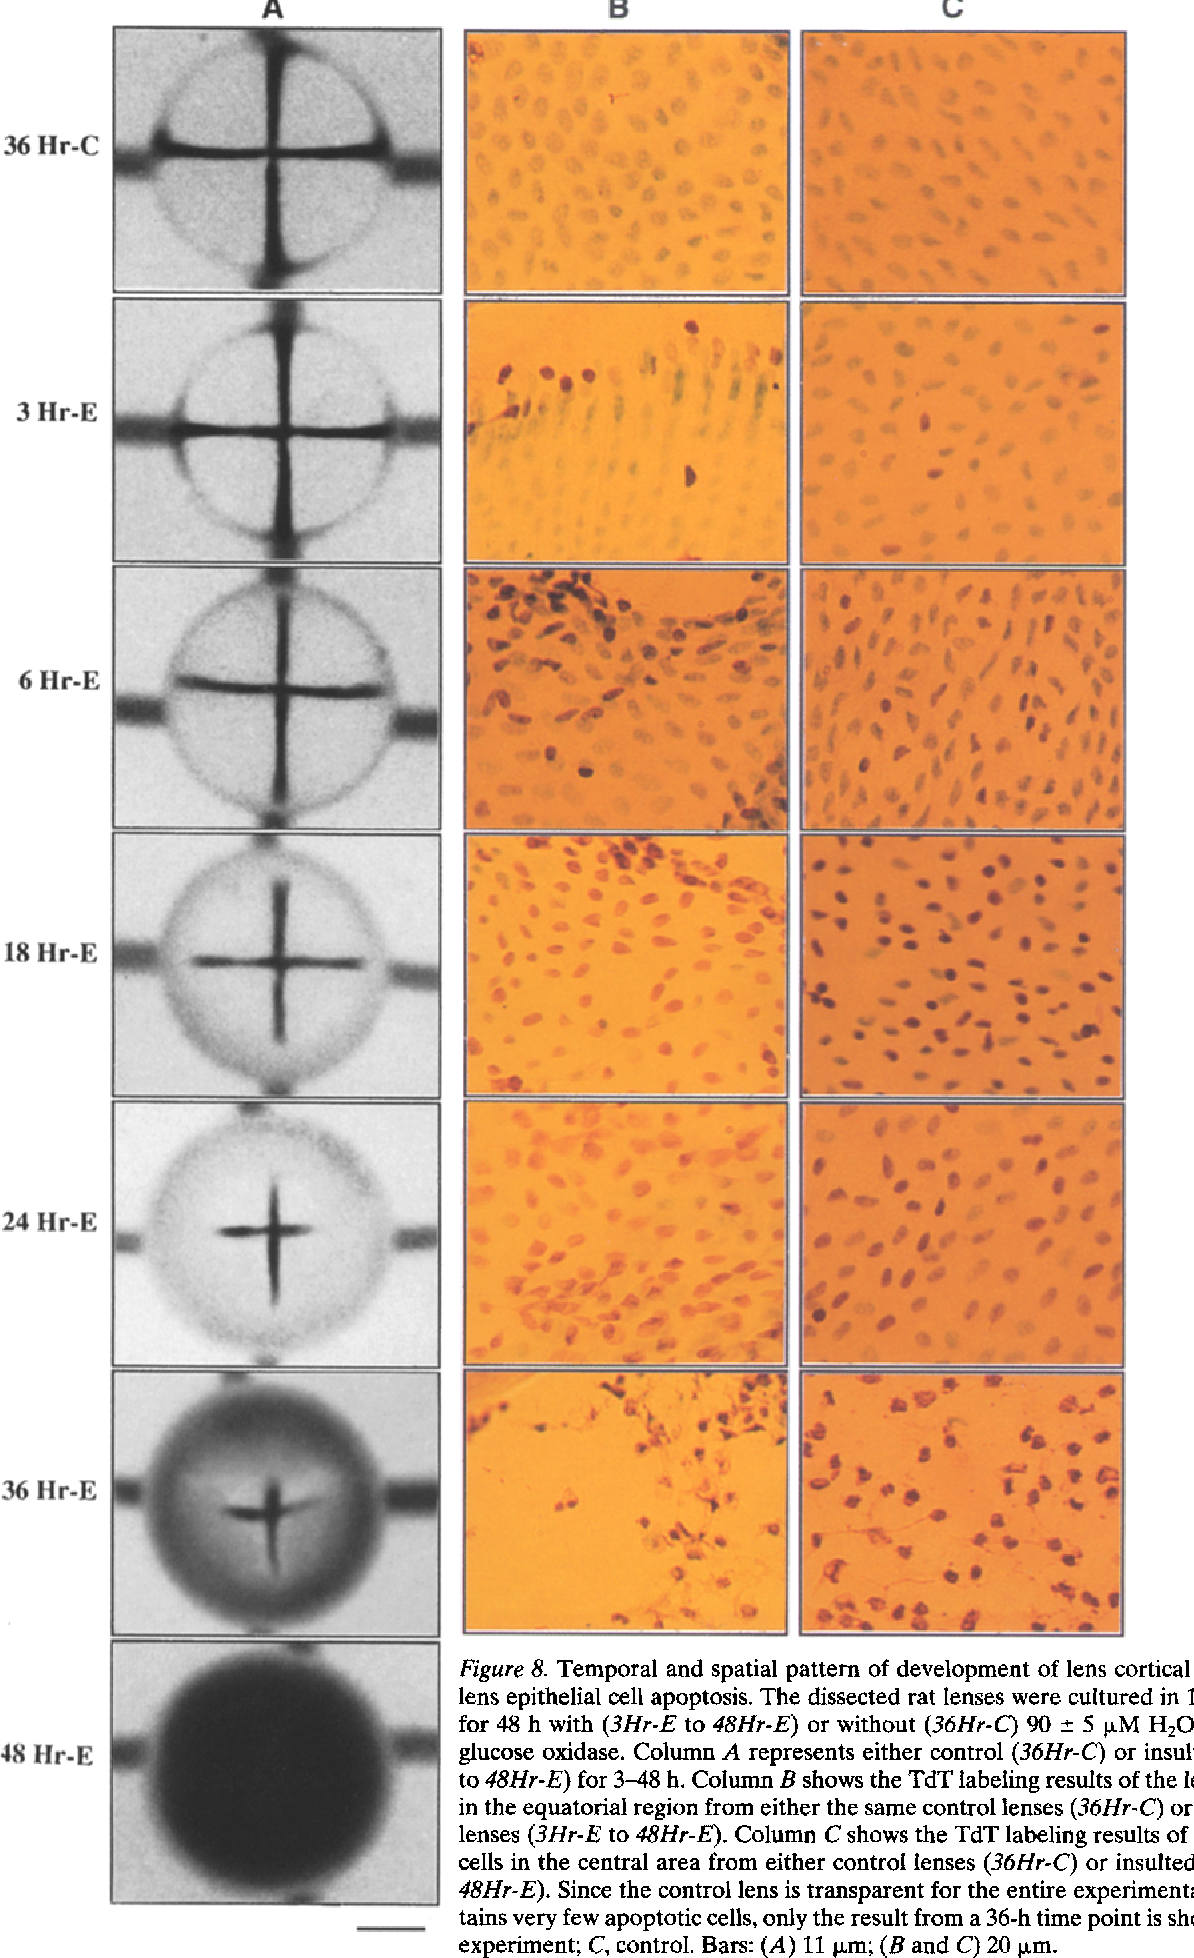 Figure 8. Temporal and spatial pattern of development of lens cortical opacification and lens epithelial cell apoptosis. The dissected rat lenses were cultured in 12 ml medium 199 for 48 h with (3Hr-E to 48Hr-E) or without (36Hr-C) 90 +_ 5 pxM H202 maintained with glucose oxidase. Column A represents either control (36Hr-C) or insulted lenses (3Hr-E to 48Hr-E) for 3-48 h. Column B shows the TdT labeling results of the lens epithelial cells in the equatorial region from either the same control lenses (36Hr-C) or the same insulted lenses (3Hr-E to 48Hr-E). Column C shows the TdT labeling results of the lens epithelial cells in the central area from either control lenses (36Hr-C) or insulted lenses (3Hr-E to 48Hr-E). Since the control lens is transparent for the entire experimental period and contains very few apoptotic cells, only the result from a 36-h time point is shown. Hr, hours; E, experiment; C, control. Bars: (A) I1 p~m; (B and C) 20 ixm.